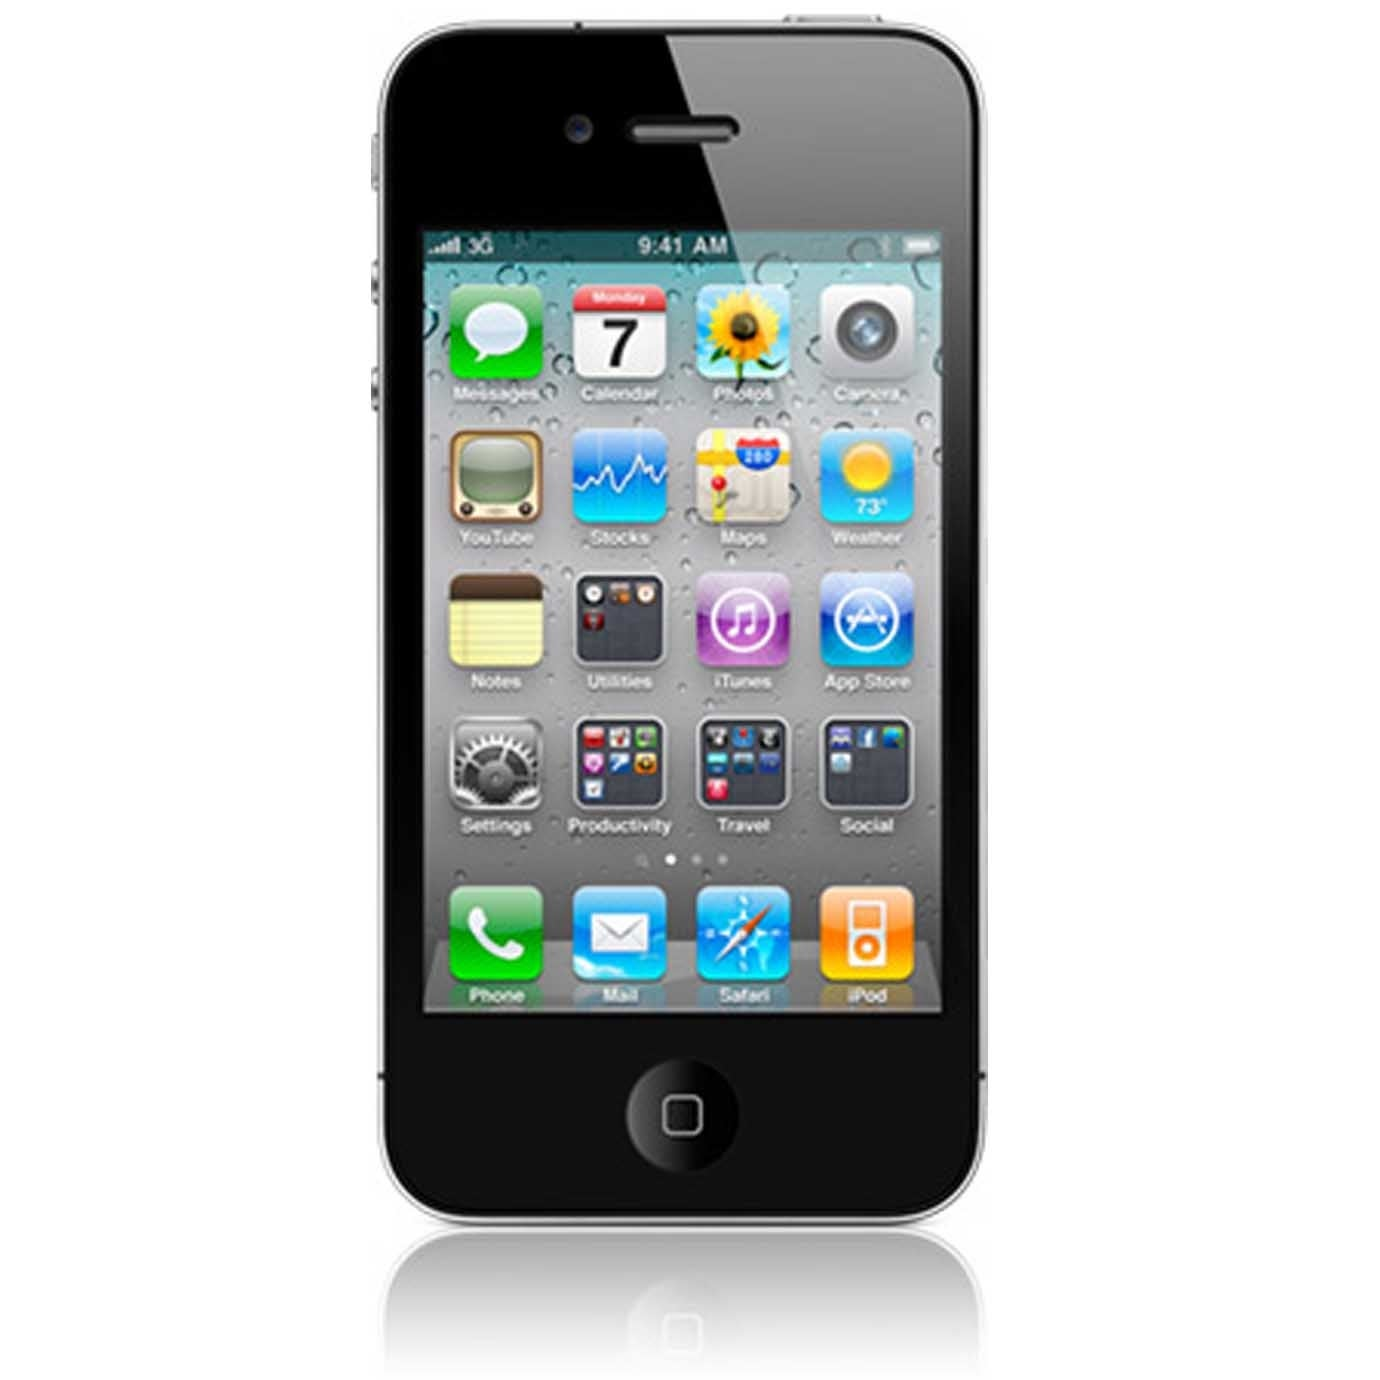 Apple iPhone 4 16GB AT&T Black Cell Phone (Refurbished)